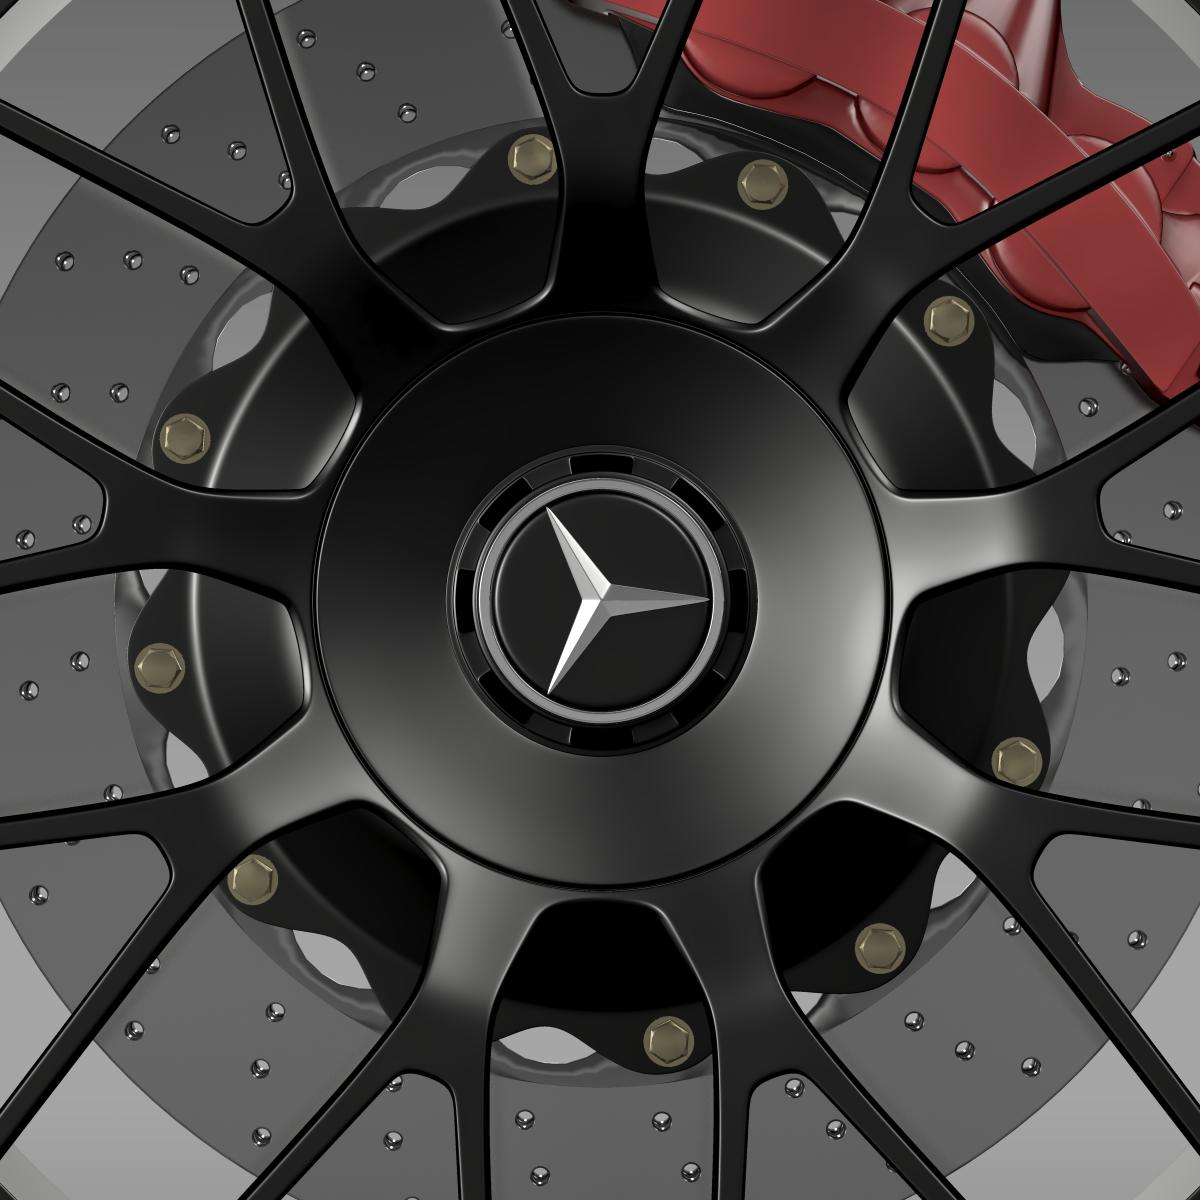 mercedes amg c 63 s edition wheel 3d model 3ds max fbx c4d lwo ma mb hrc xsi obj 210746